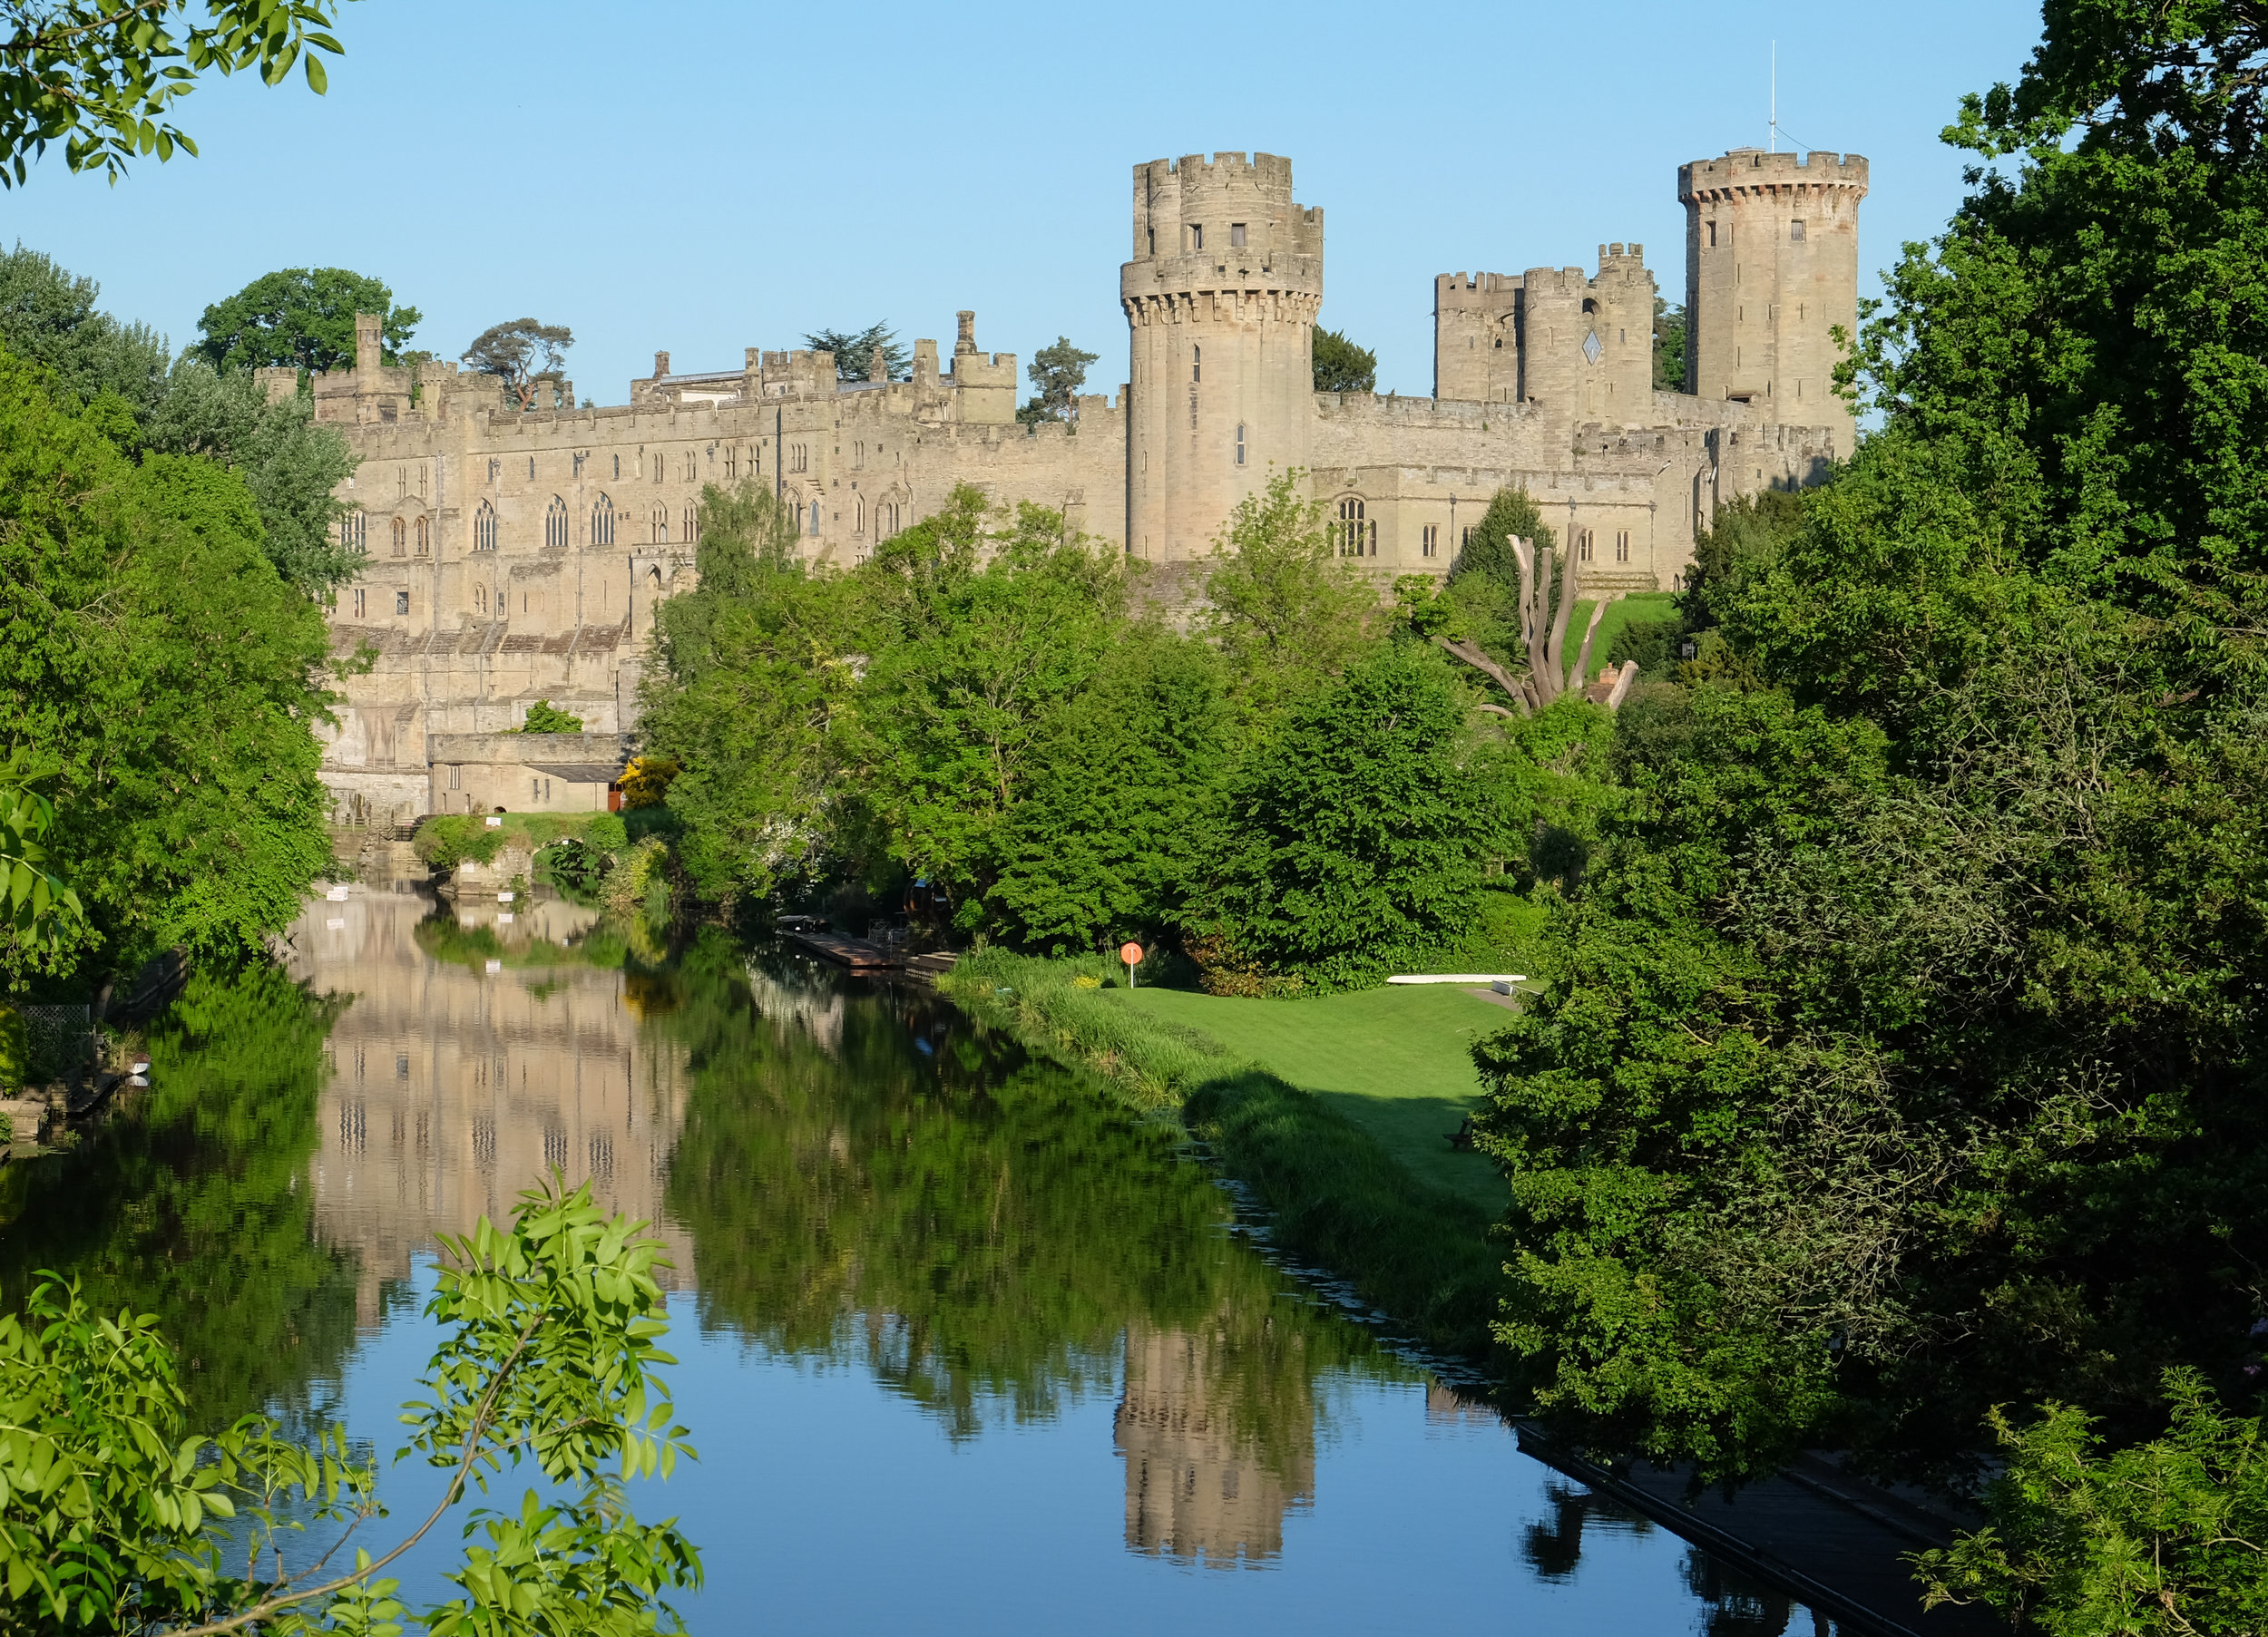 """"""" Warwick Castle """" by  DeFacto , licensed under CC BY-SA 4.0 ( https://creativecommons.org/licenses/by-sa/4.0/deed.en ). A medieval castle built in 1068 in Warwick, England."""